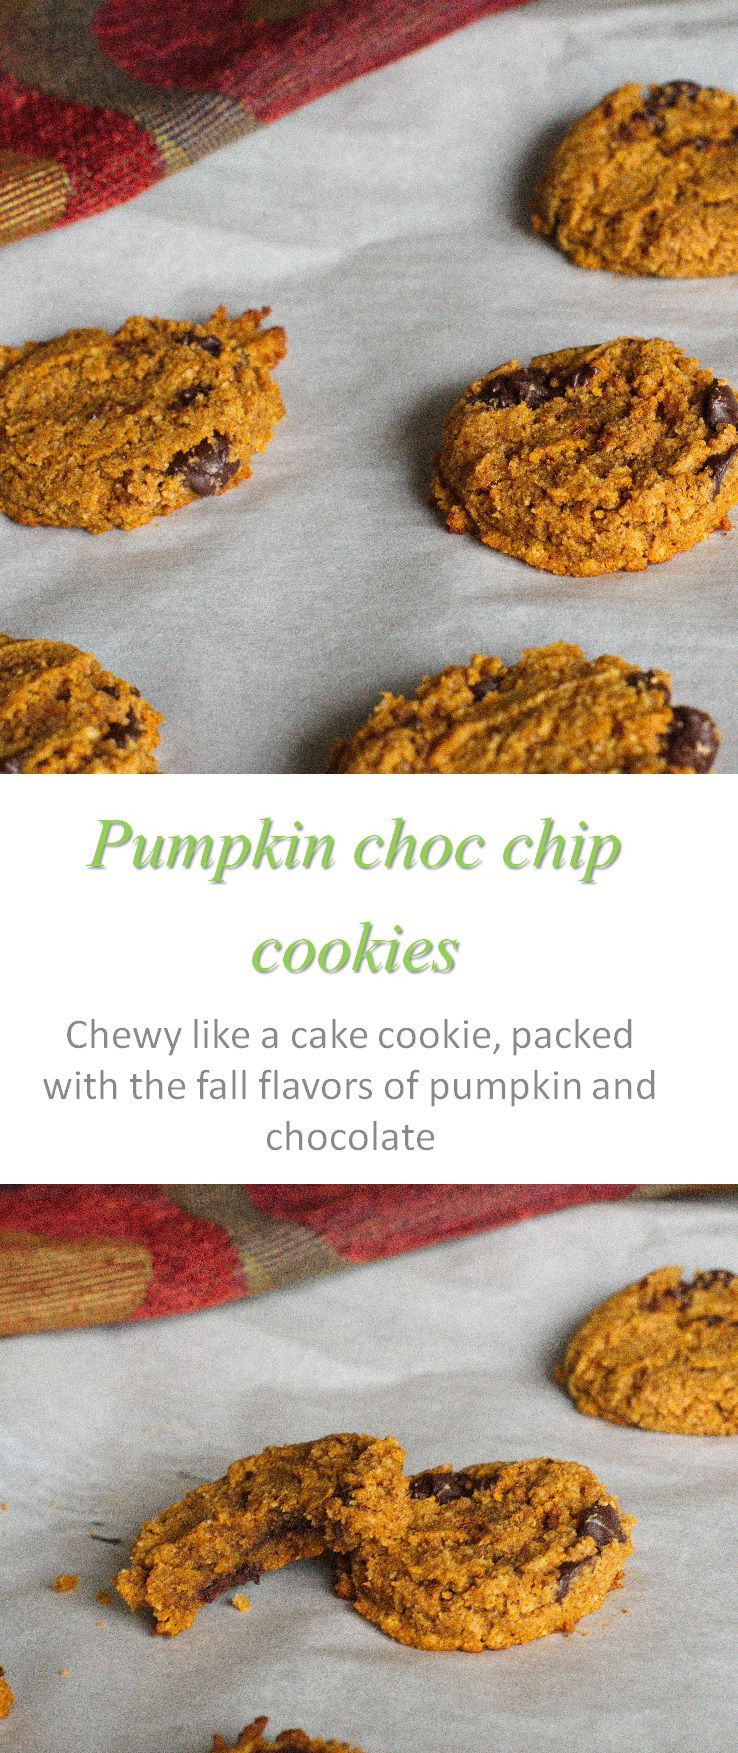 Gluten-free, dairy-free pumpkin chocolate chip cookies that take all the fall flavors of pumpkin and chocolate and combines them into deliciousness in every bite! #pumpkin